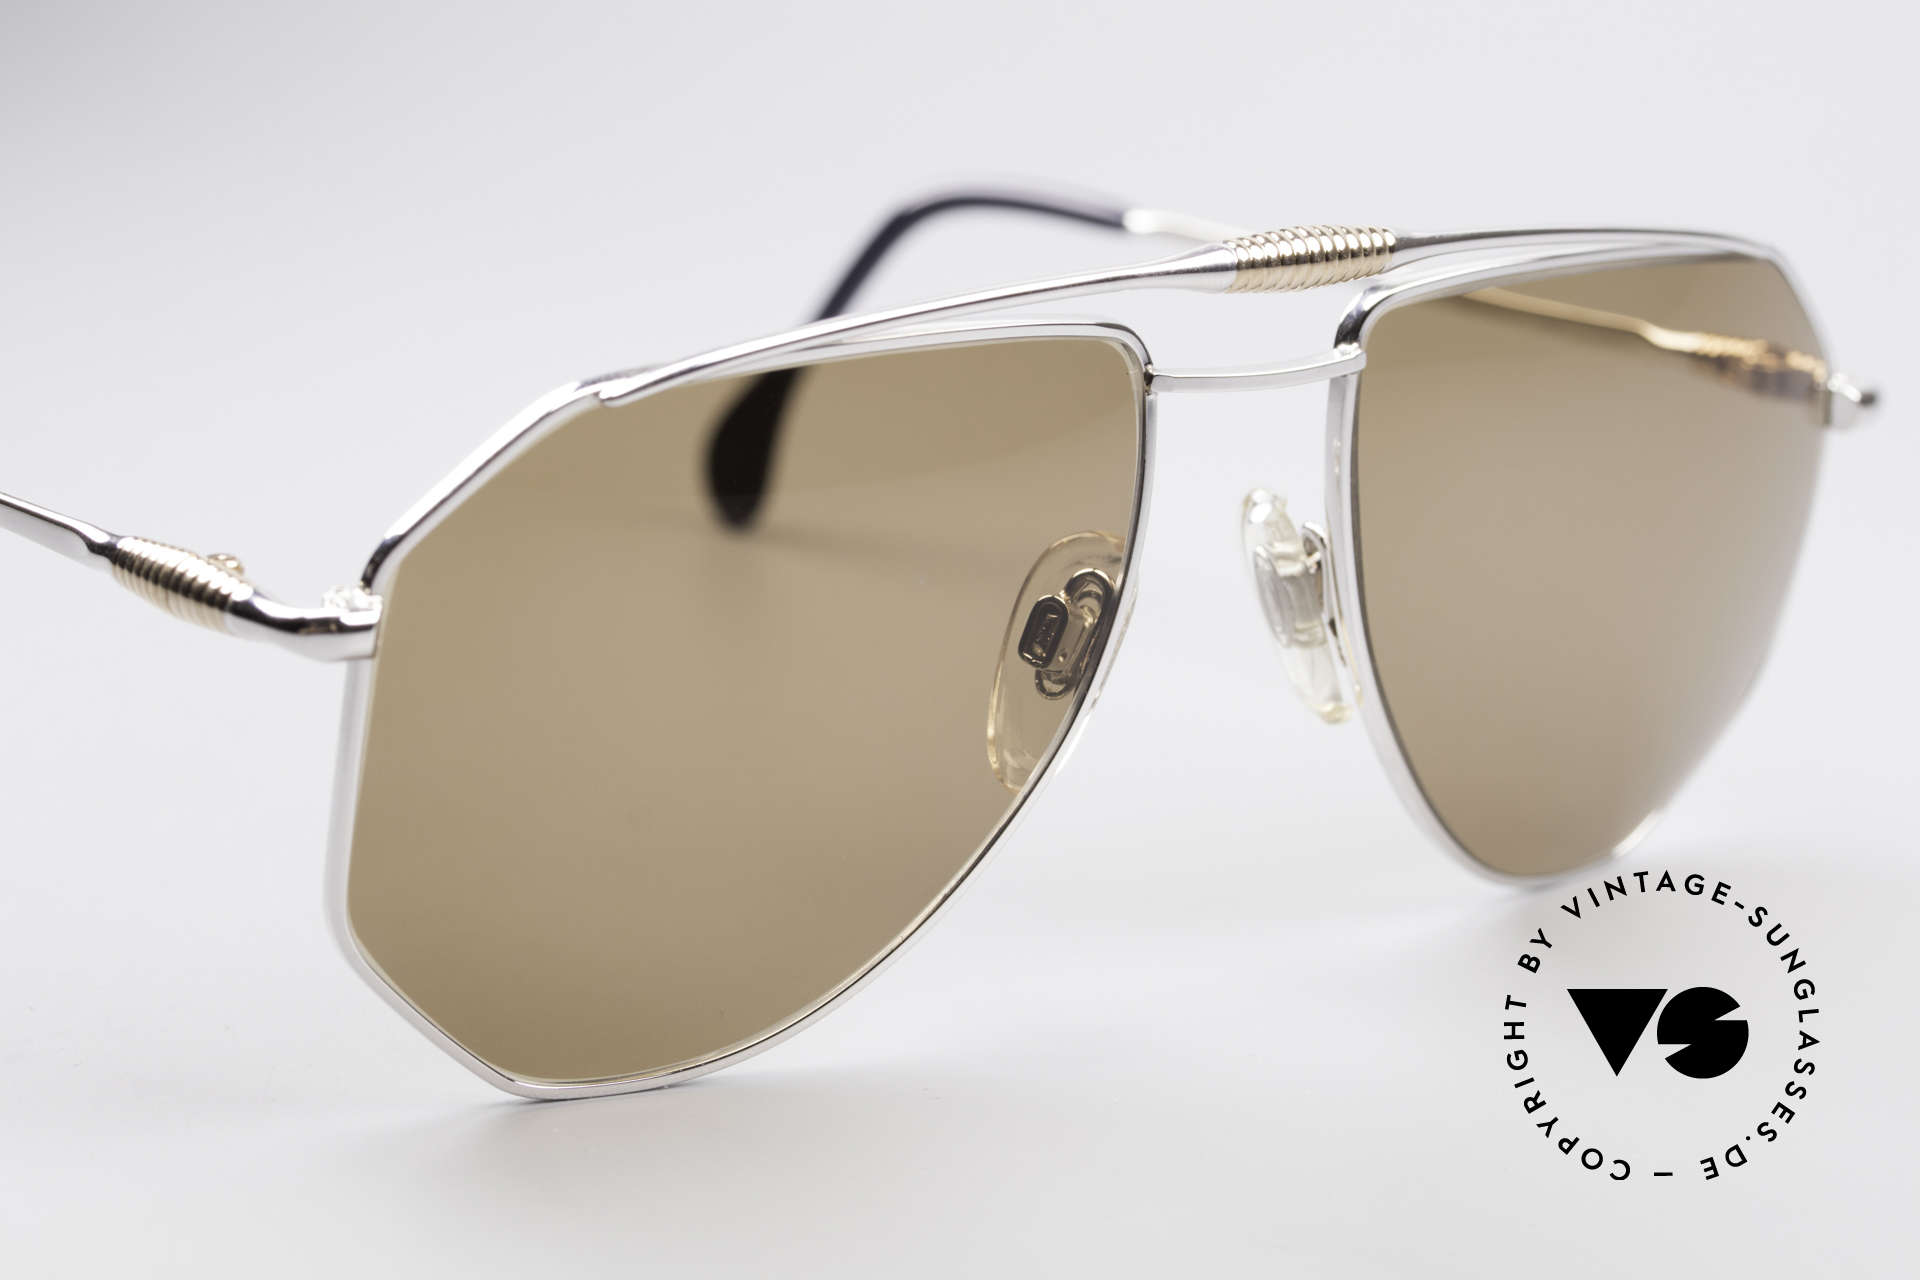 Zollitsch Cadre 120 Large Aviator Sunglasses, NO retro shades, but a 30 years old original, L size 58/18, Made for Men